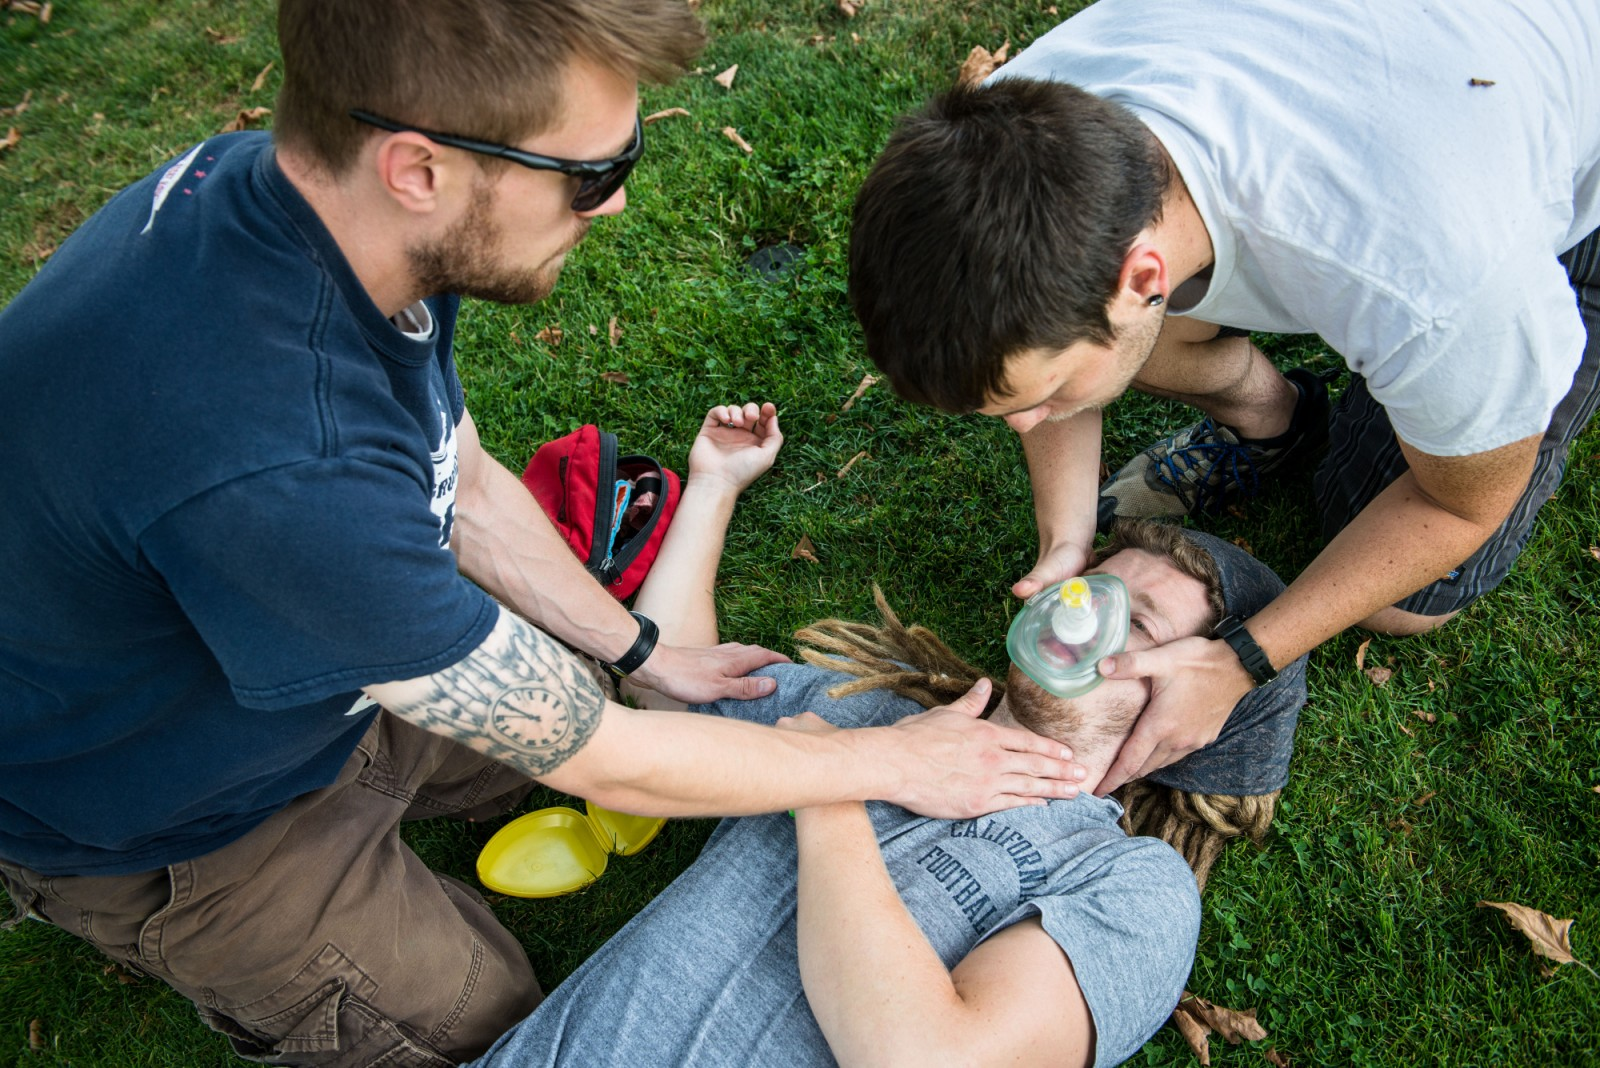 Students practice finding a pulse and administering CPR on the first day of the Wilderness First Responder summer intensive. -- Shauna Bittle photo